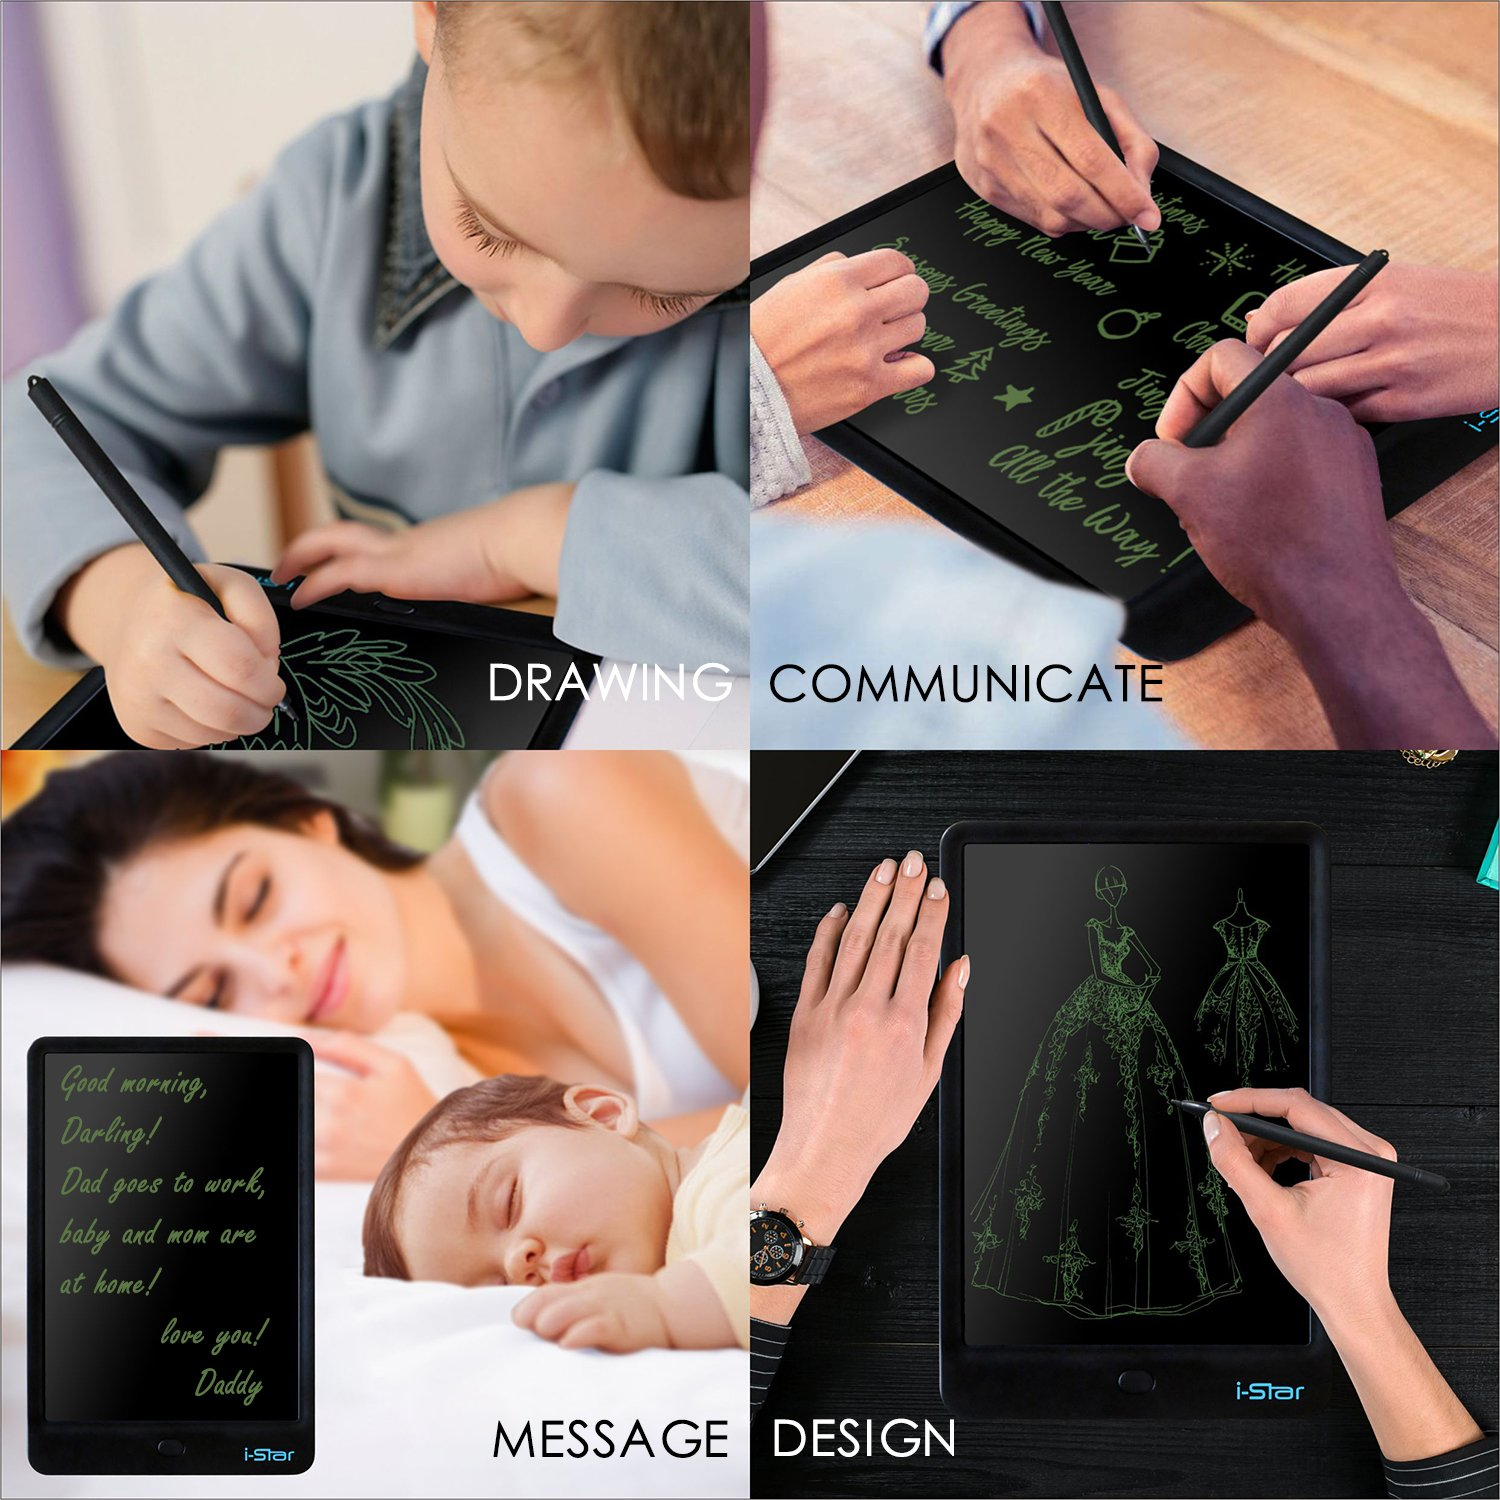 LCD Writing Tablet, i-Star 10 inches Lock Electronic Drawing Painting Board, Paper-Free, Portable Doodle Handwriting Notepad Gift for Kids Adults Designer Office House, Black by I-STAR (Image #5)